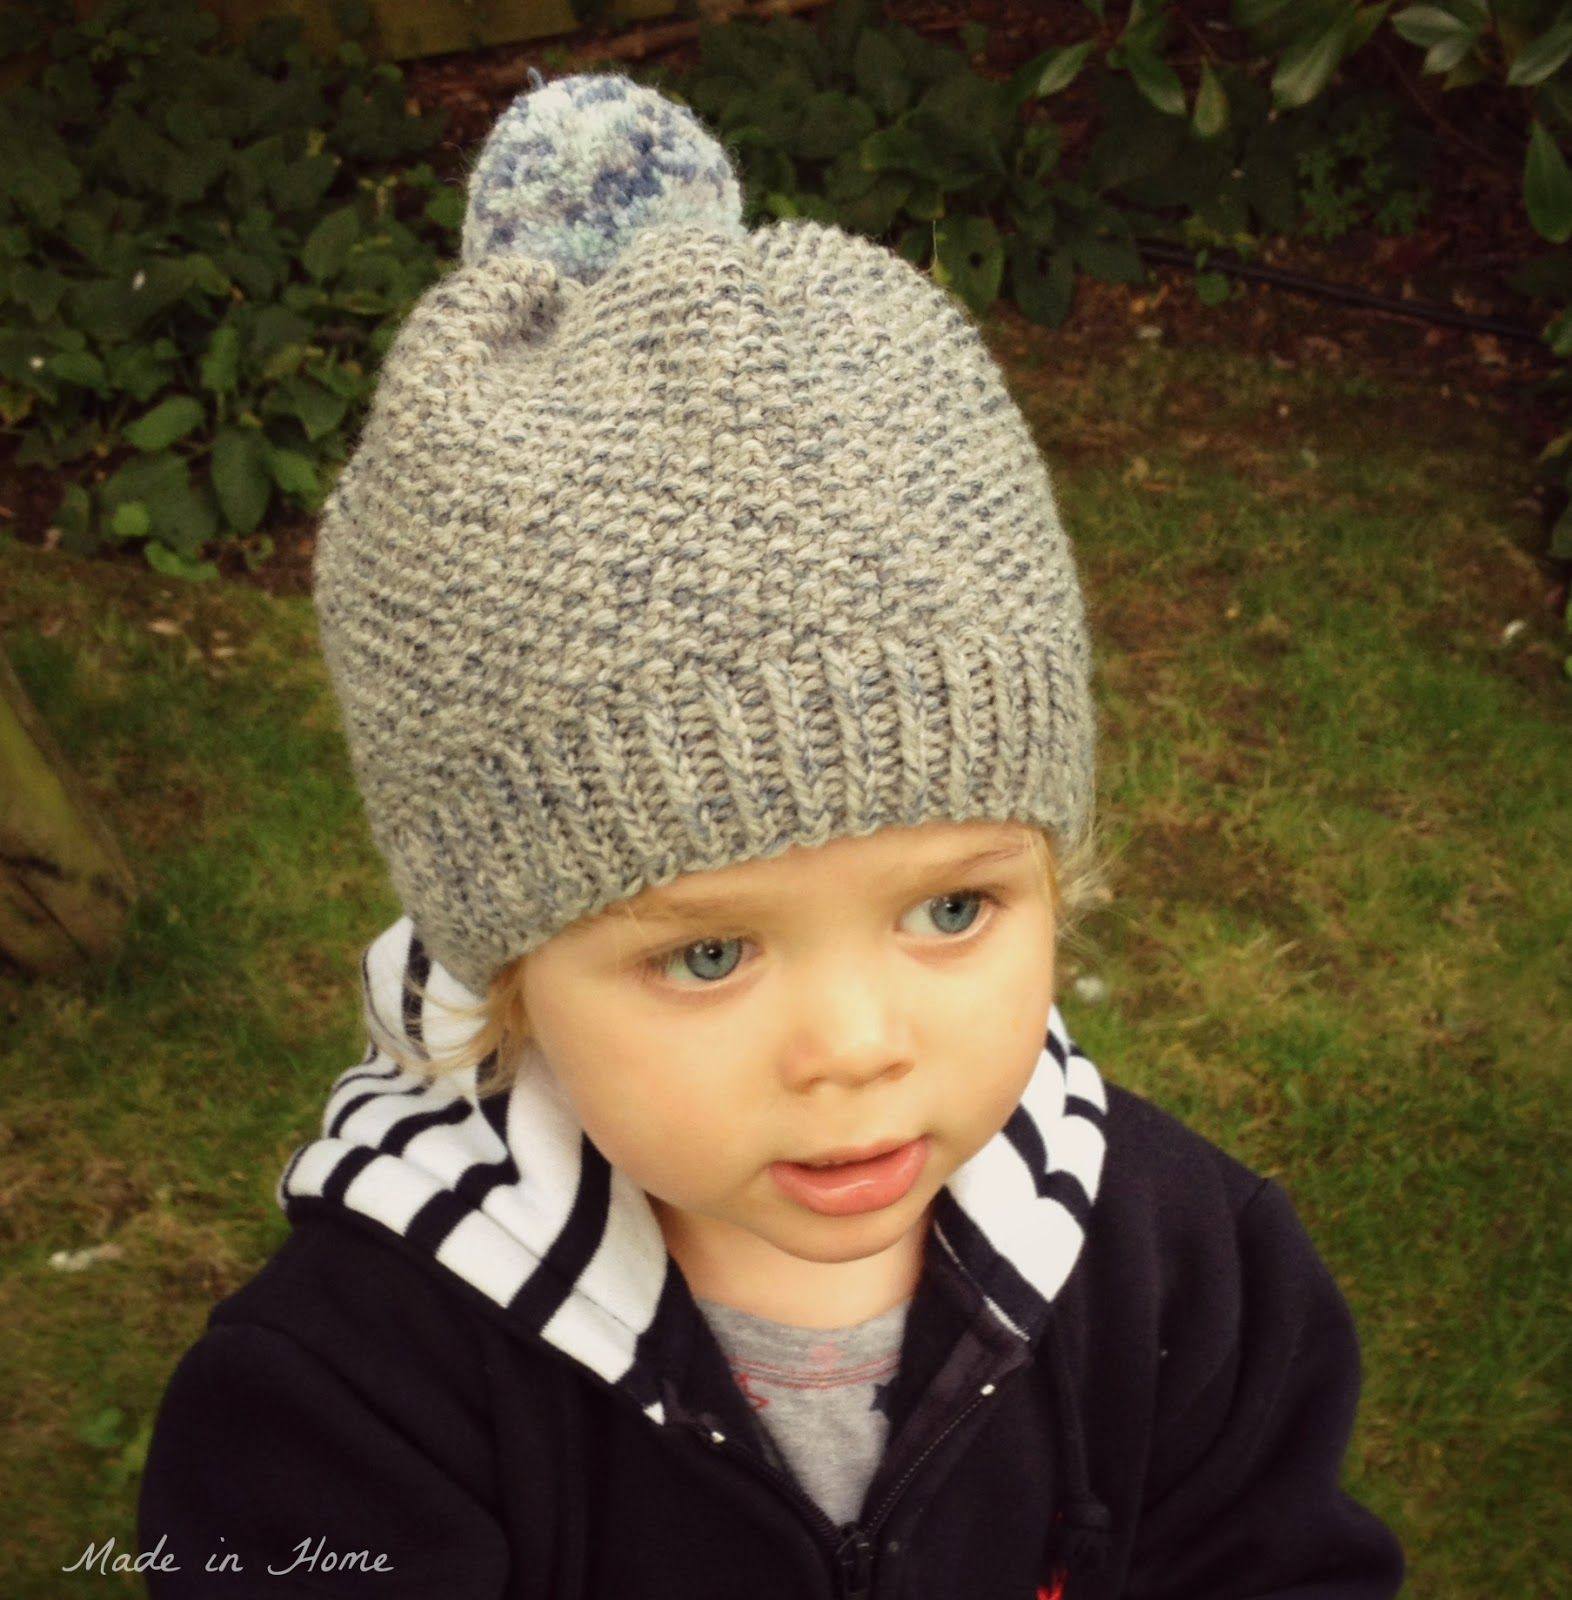 The new beanie hat season has officially started , whoohoo! And Baby ...